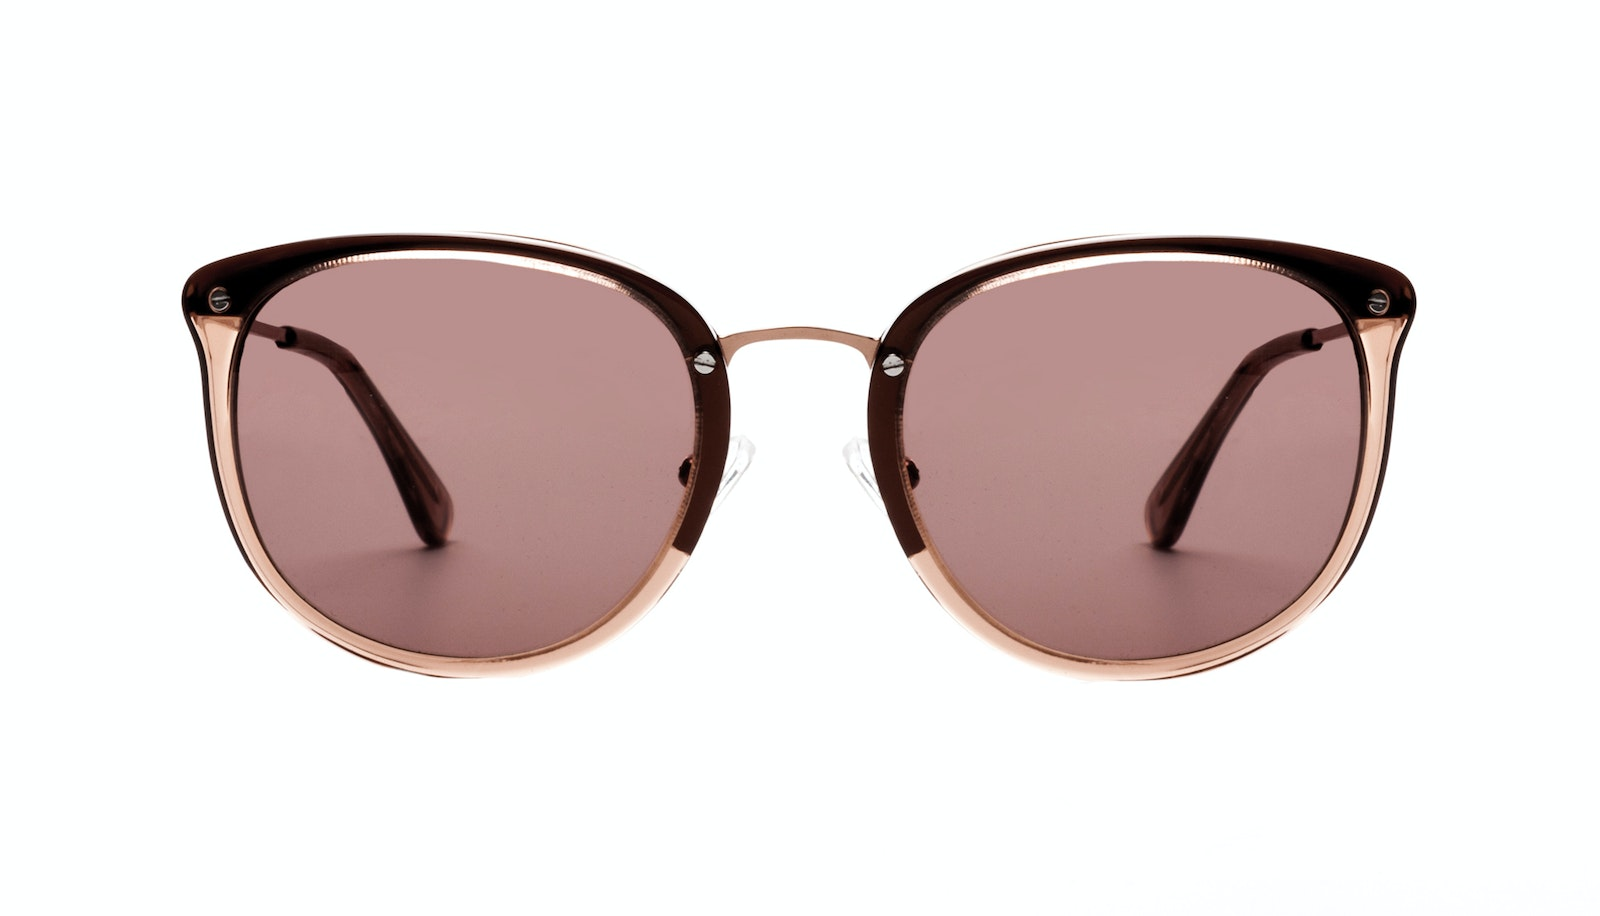 Affordable Fashion Glasses Square Round Sunglasses Women Amaze Rose